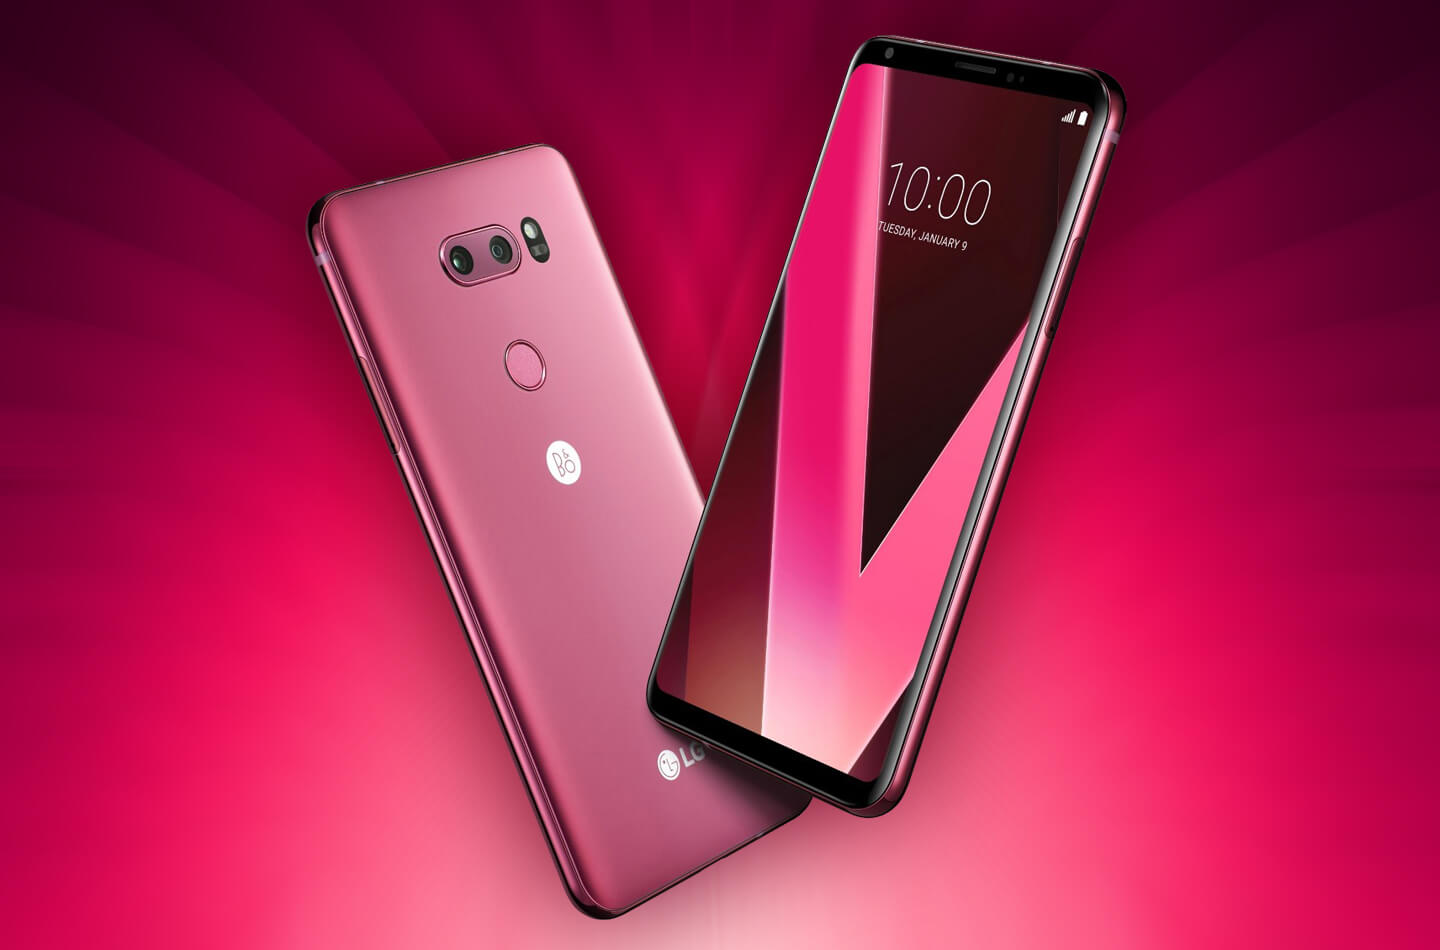 lg v30 raspberry rose showcased at 2018 ces letsgodigital. Black Bedroom Furniture Sets. Home Design Ideas